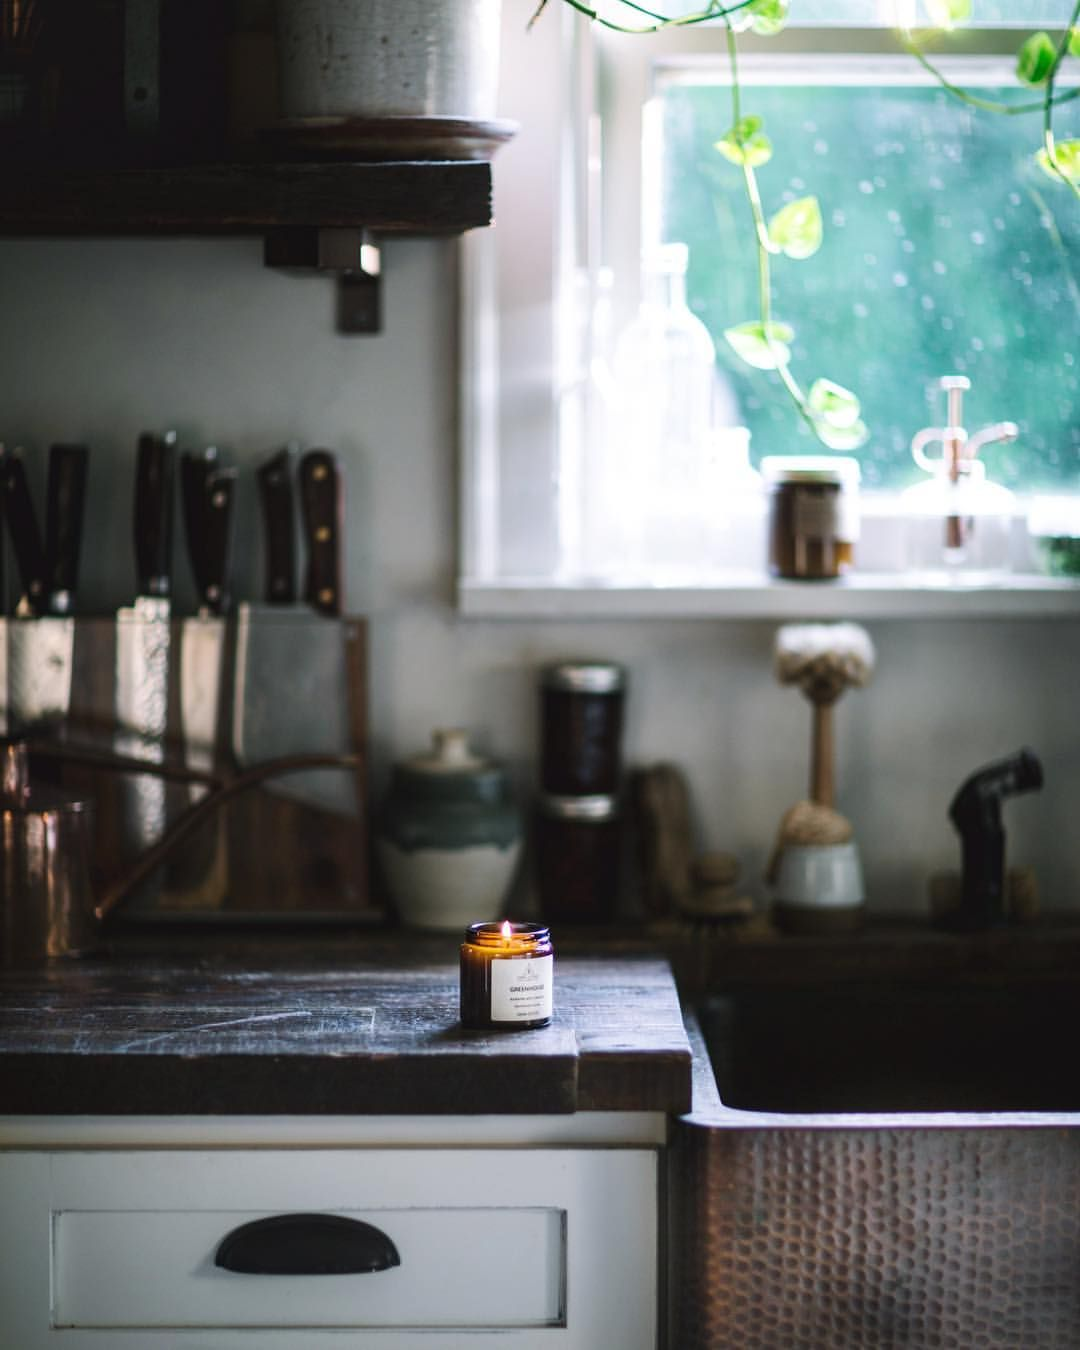 Rustic kitchen window decor  pin by evasee on for the home  pinterest  rustic kitchen and kitchens